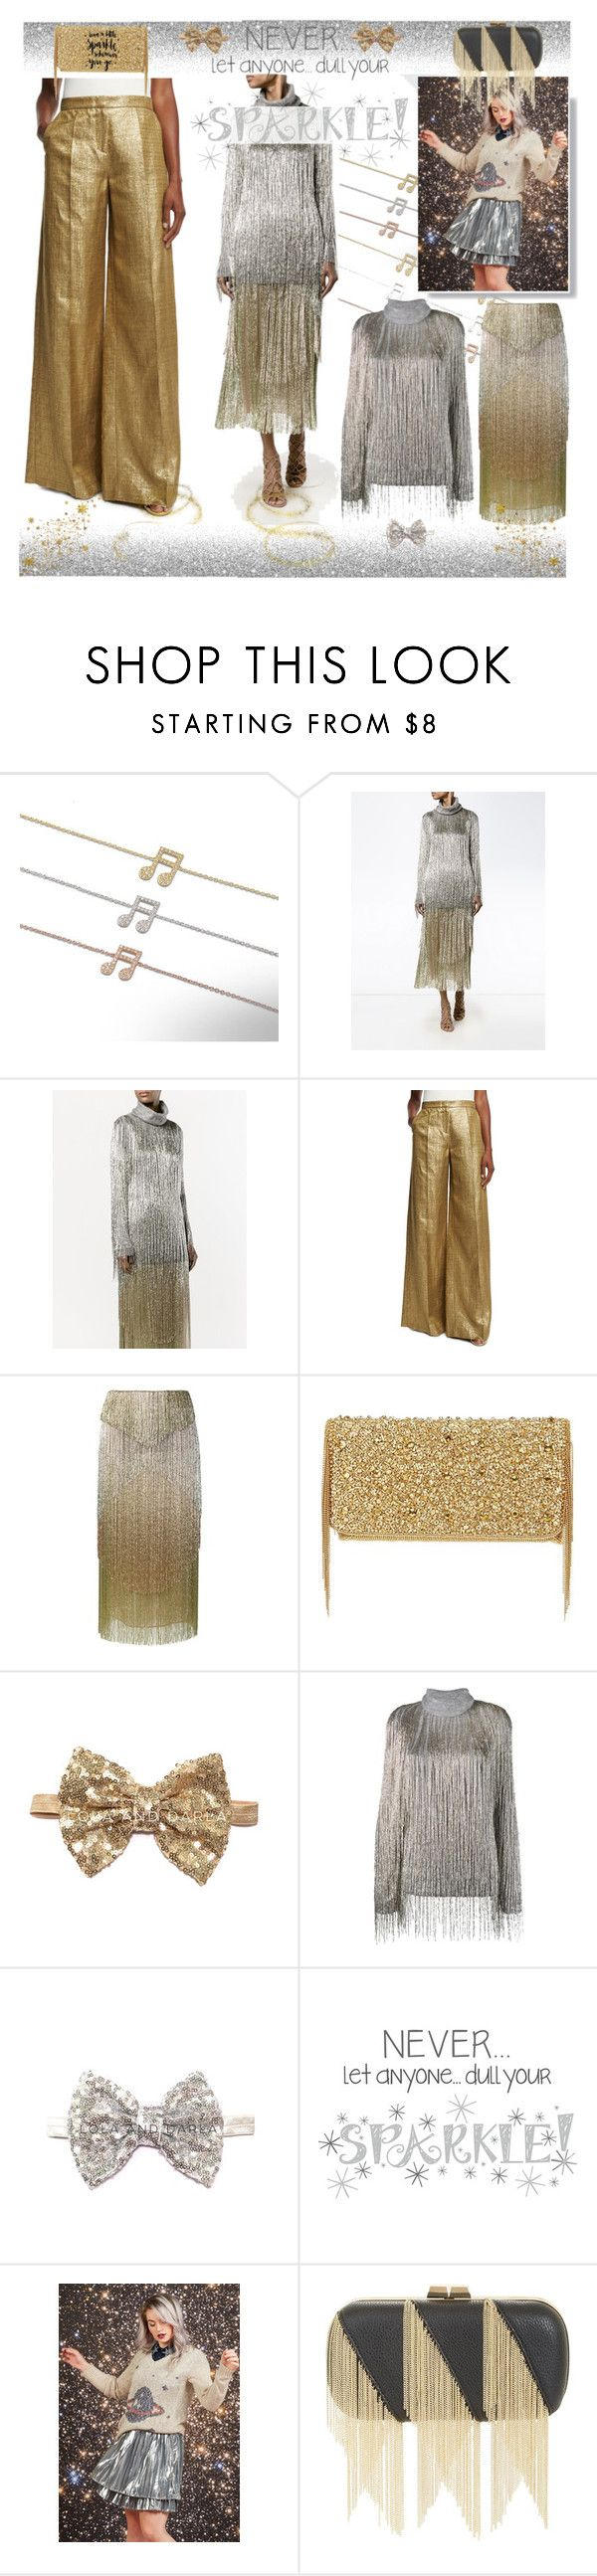 """""""Dance Party!"""" by yours-styling-best-friend ❤ liked on Polyvore featuring Linnet Jewellery, Valentino, Etro, Mary Frances Accessories and BCBGMAXAZRIA"""